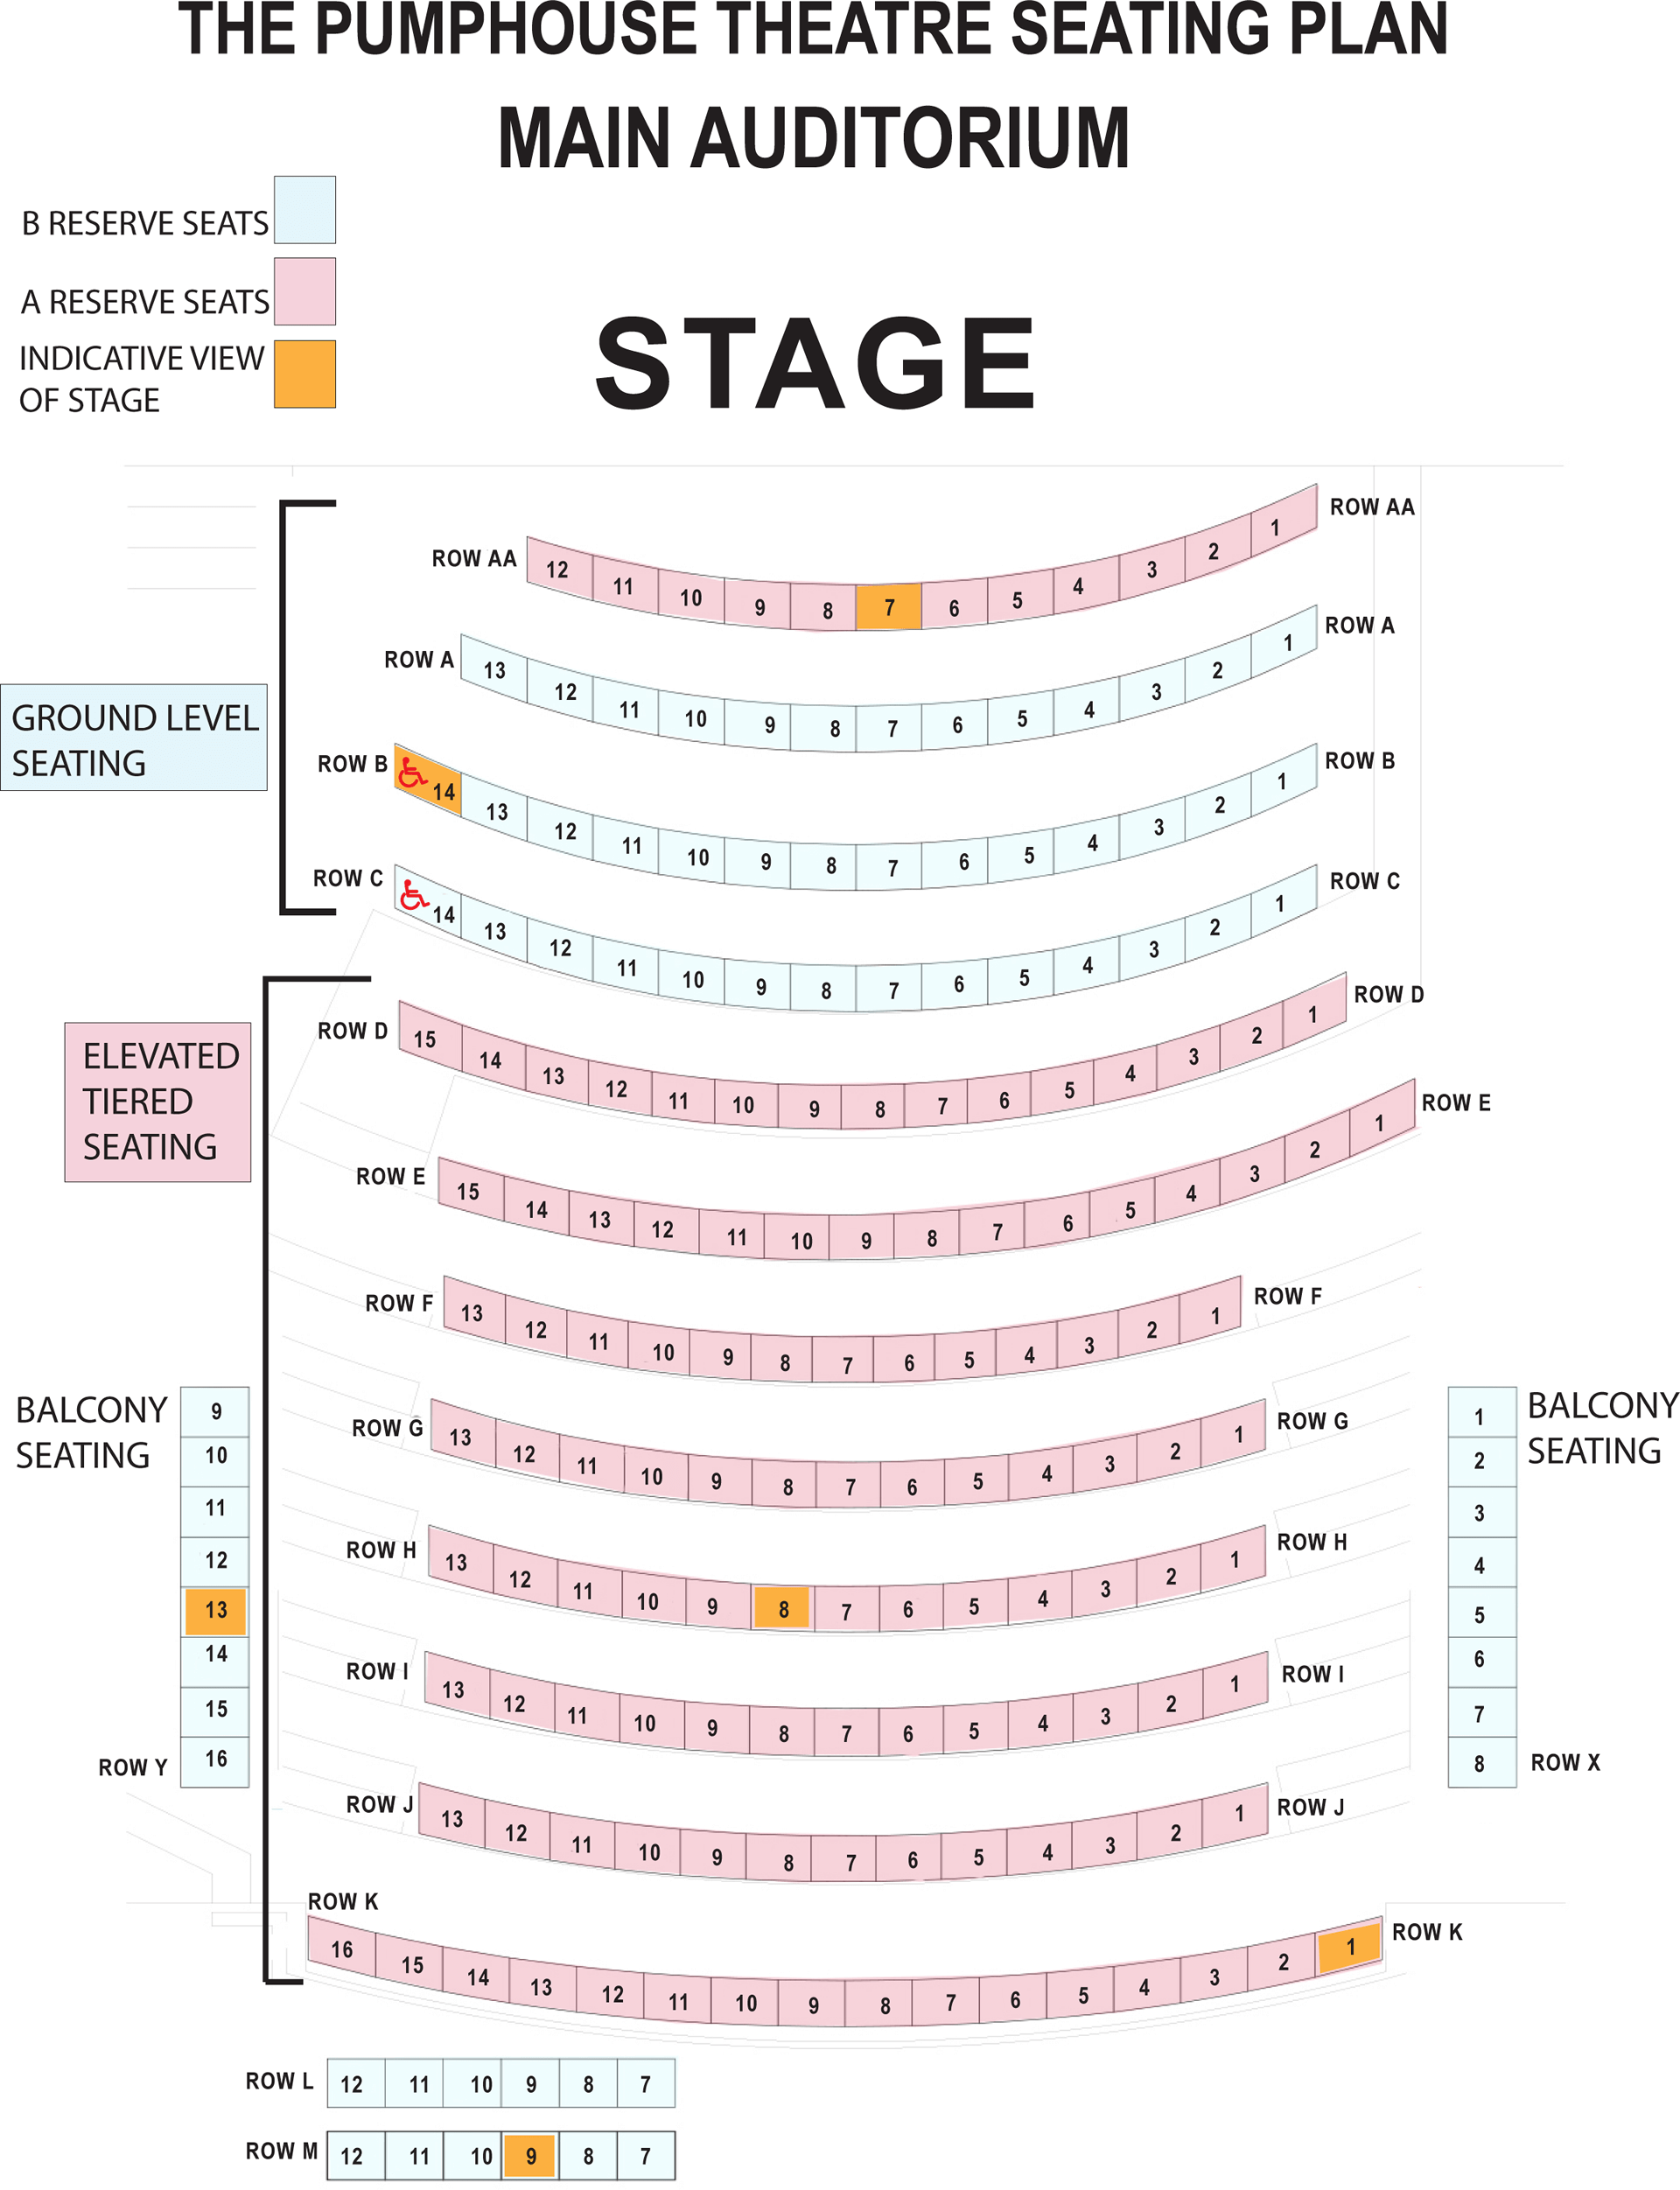 The PumpHouse Theatre seating plan